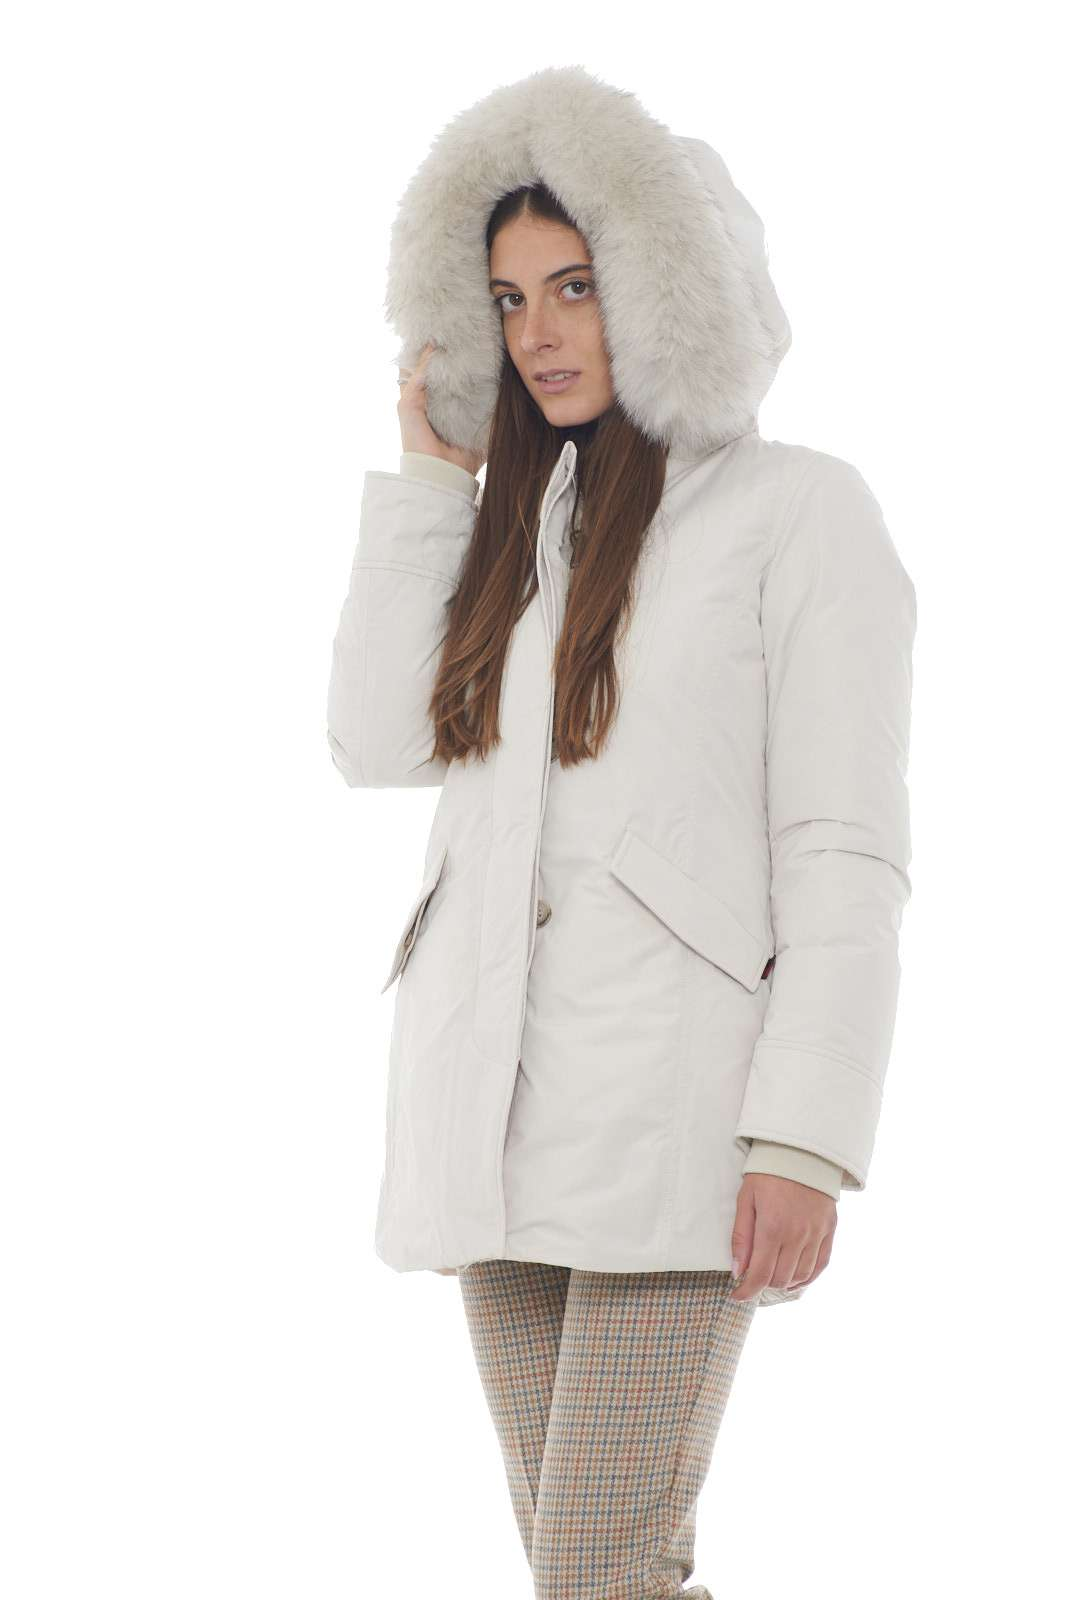 https://www.parmax.com/media/catalog/product/a/i/AI-outlet_parmax-parka-donna-Woolrich-wwcps2834-B.jpg